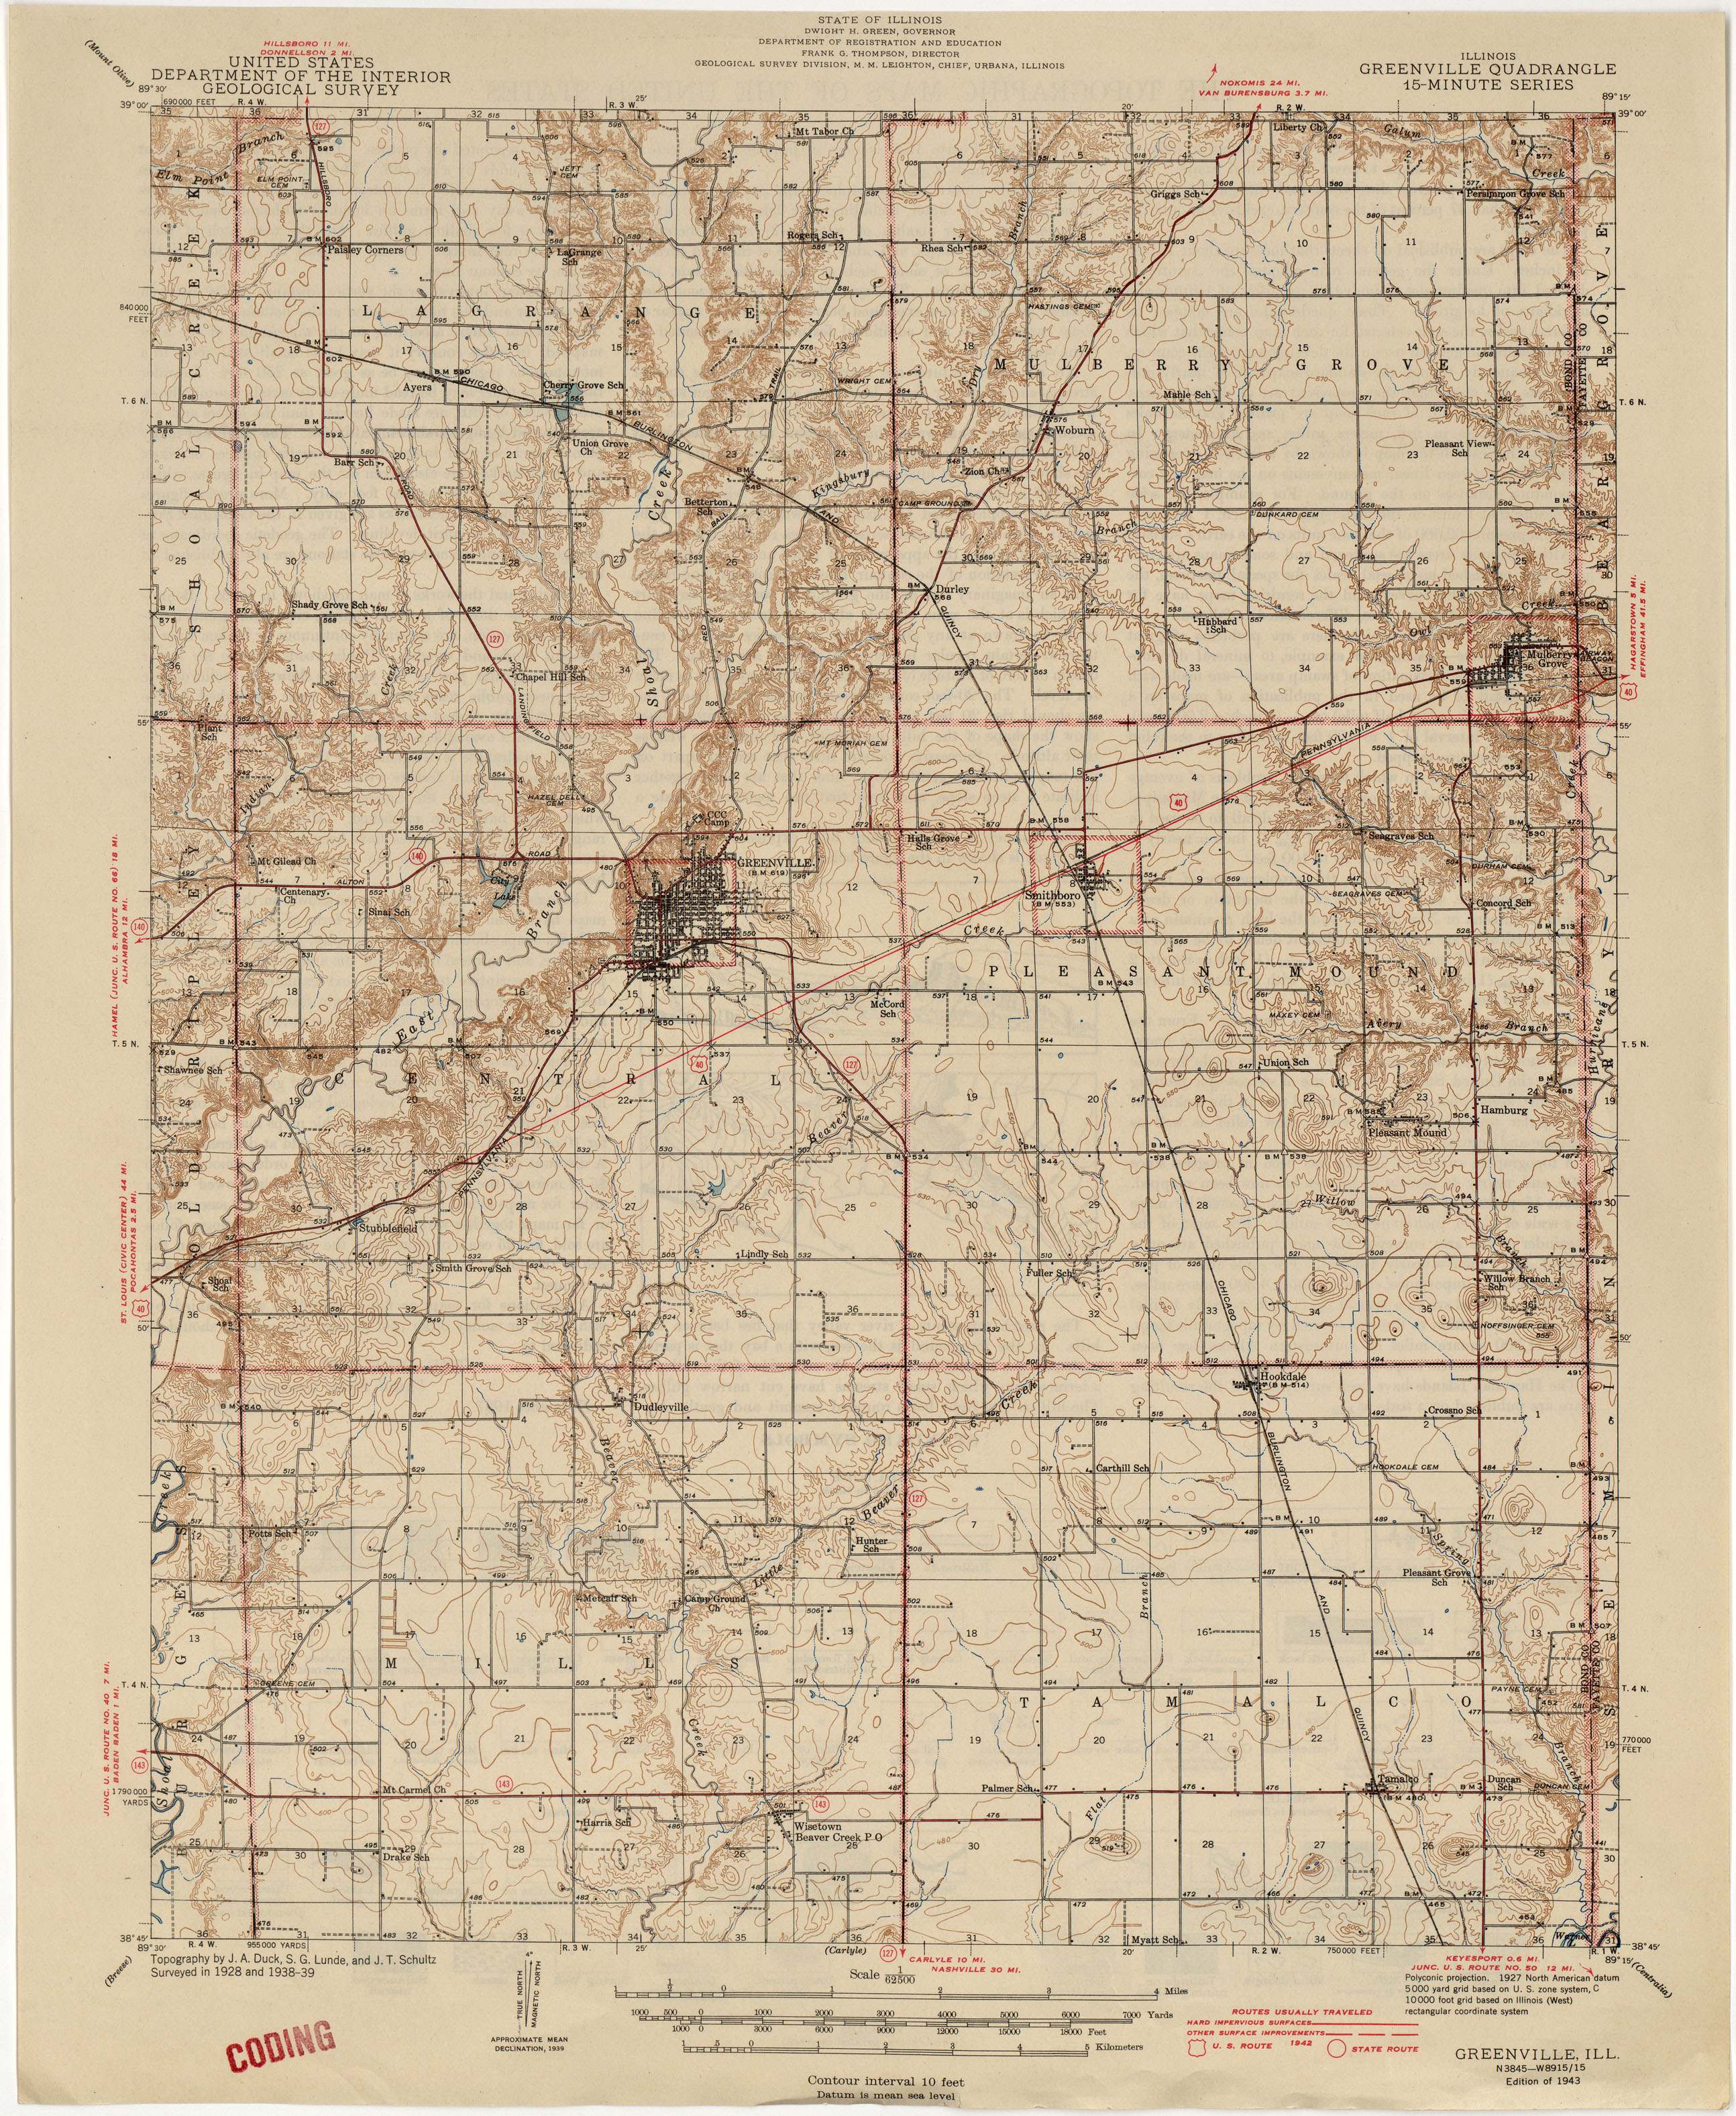 Streator Illinois Map.Illinois Historical Topographic Maps Perry Castaneda Map